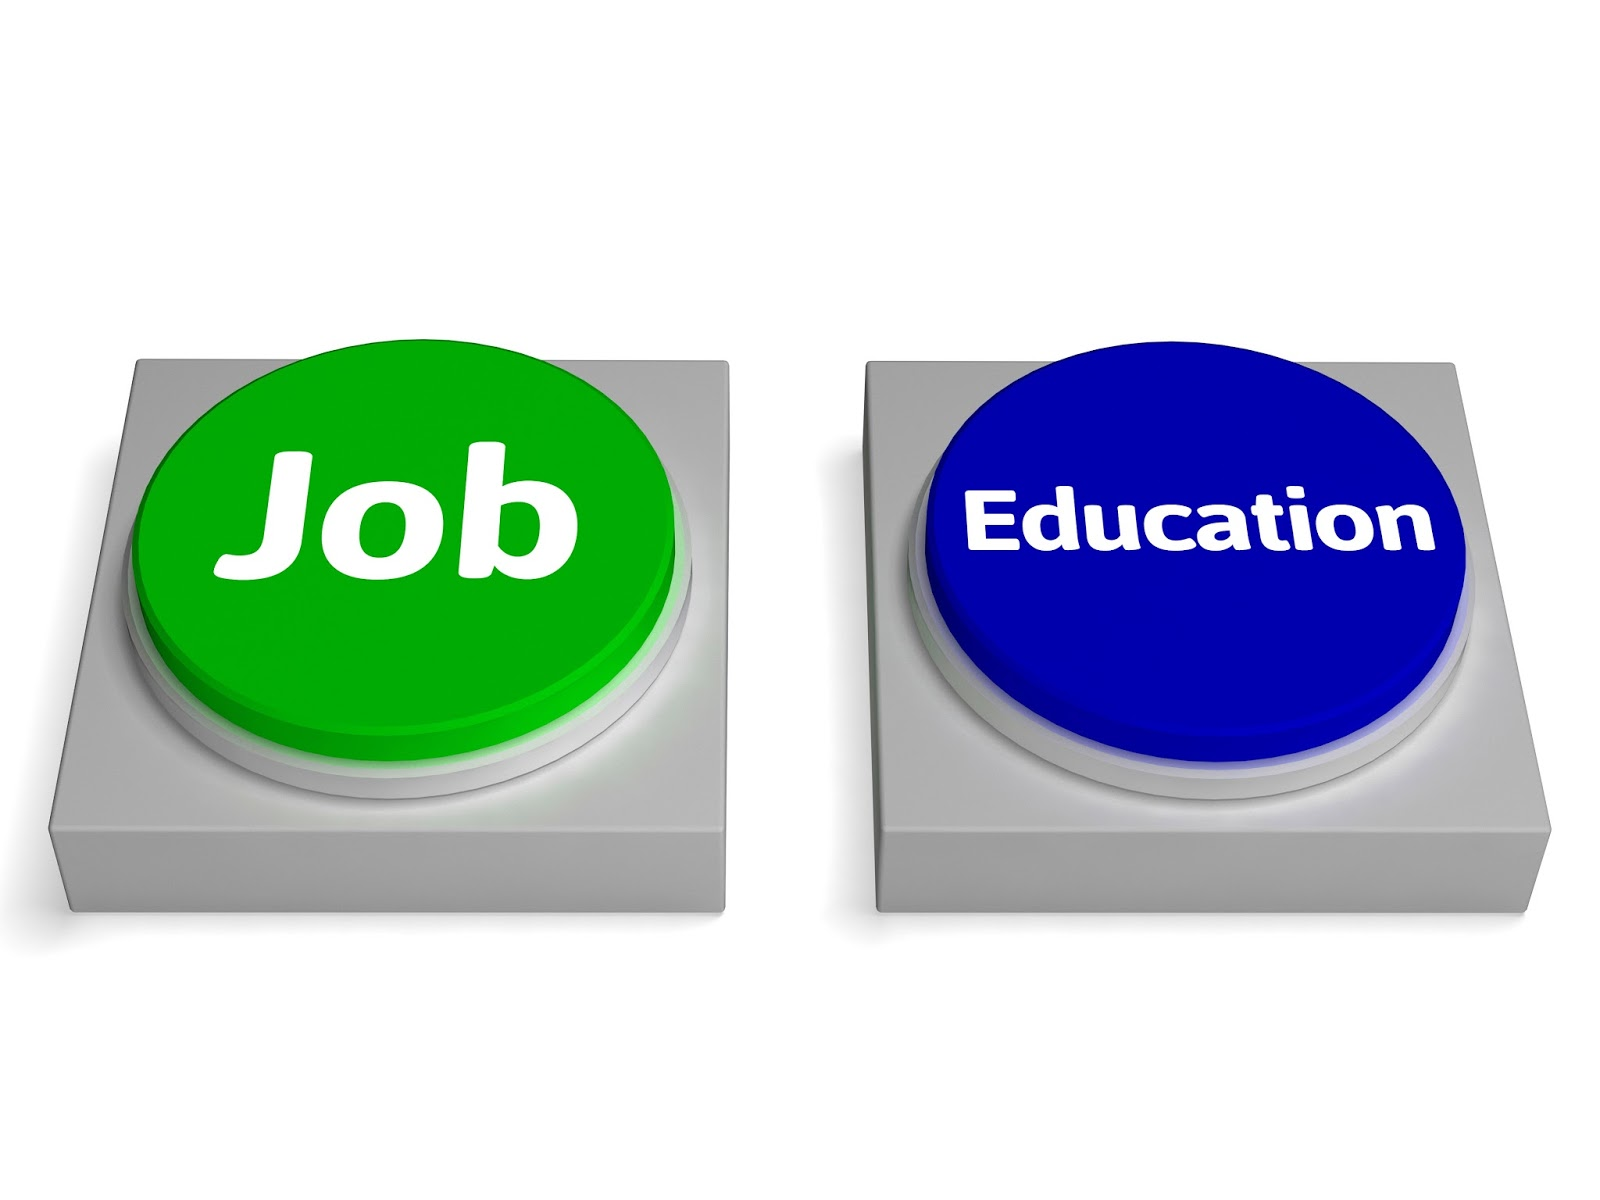 job-education-buttons-shows-employed-or-at-college_zknqlzDO.jpg